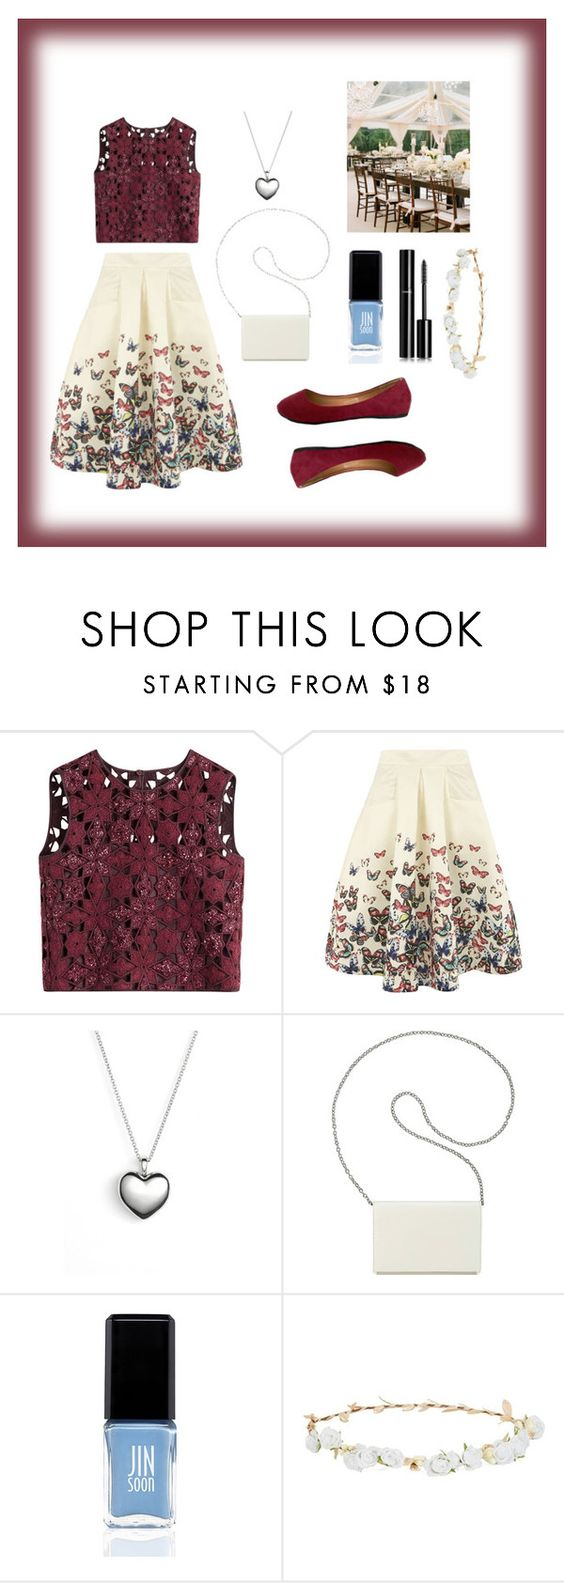 """""""outdoor wedding"""" by lailarezk ❤ liked on Polyvore featuring Alberta Ferretti, Jolie Moi, Pandora, Nine West, JINsoon, Robert Rose, Chanel and Reception"""